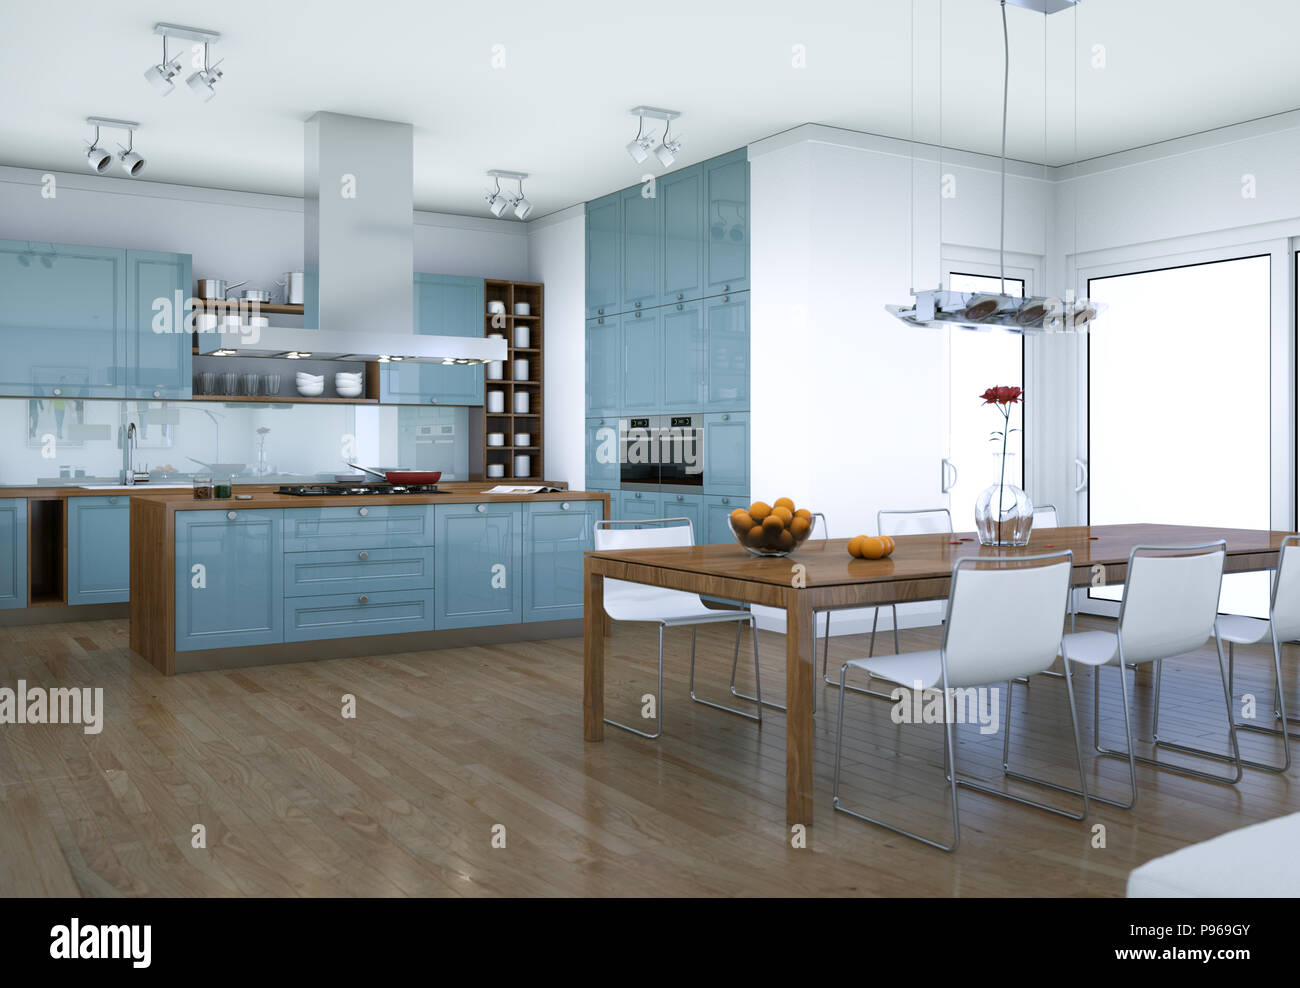 Küche Blau Blau Moderne Küche Interior Design Illustration Stockfoto Bild